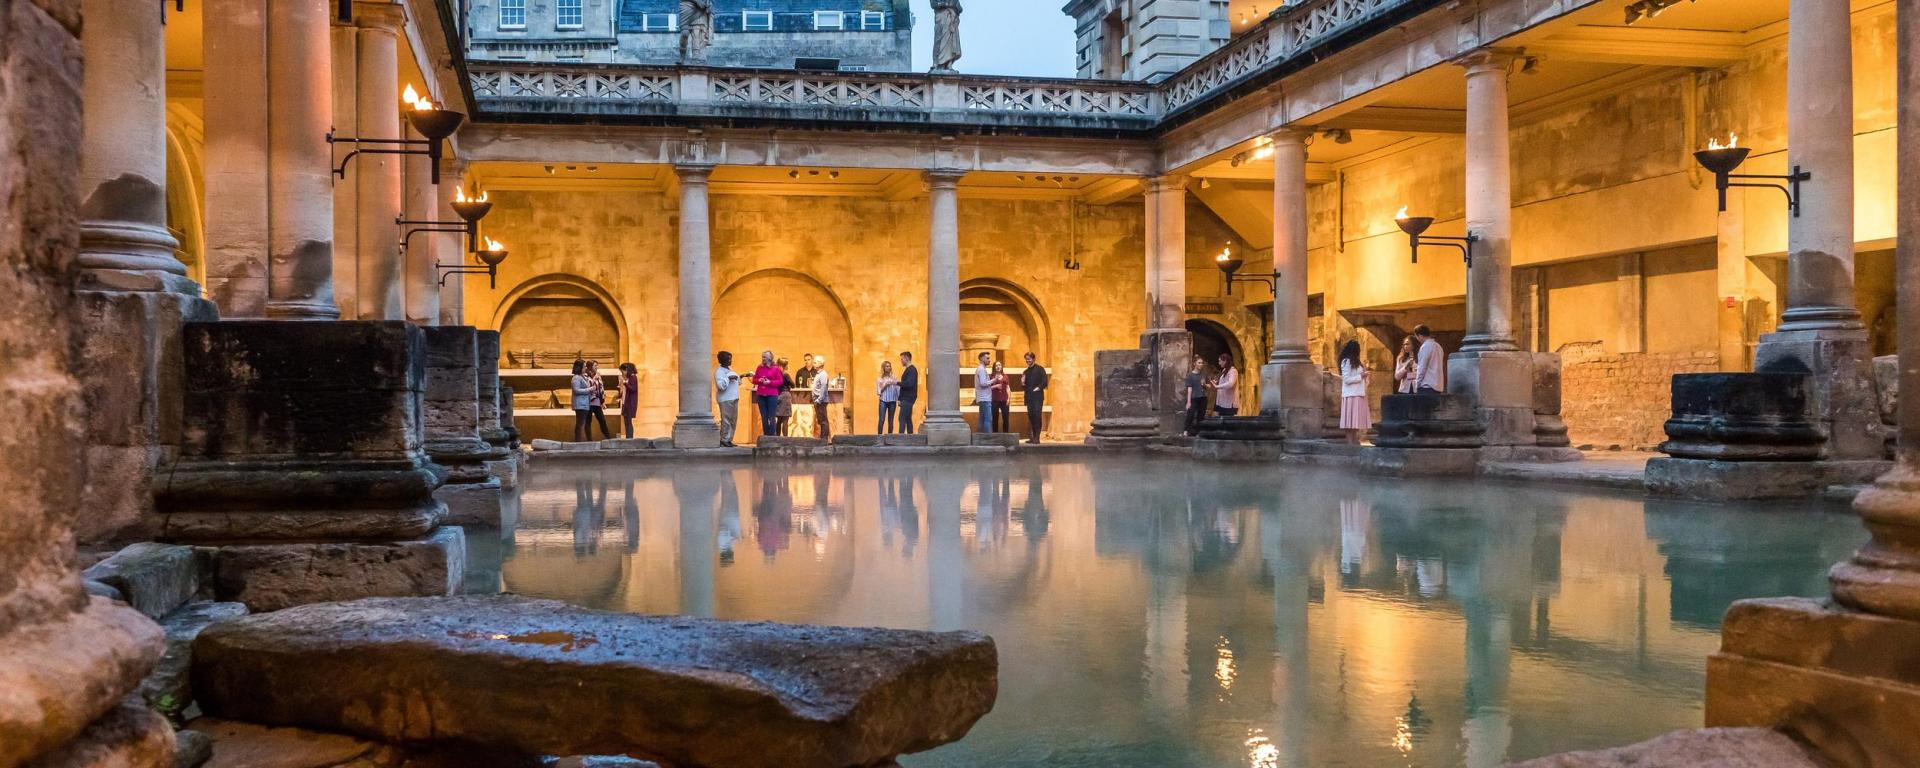 best things to do in Bath for students